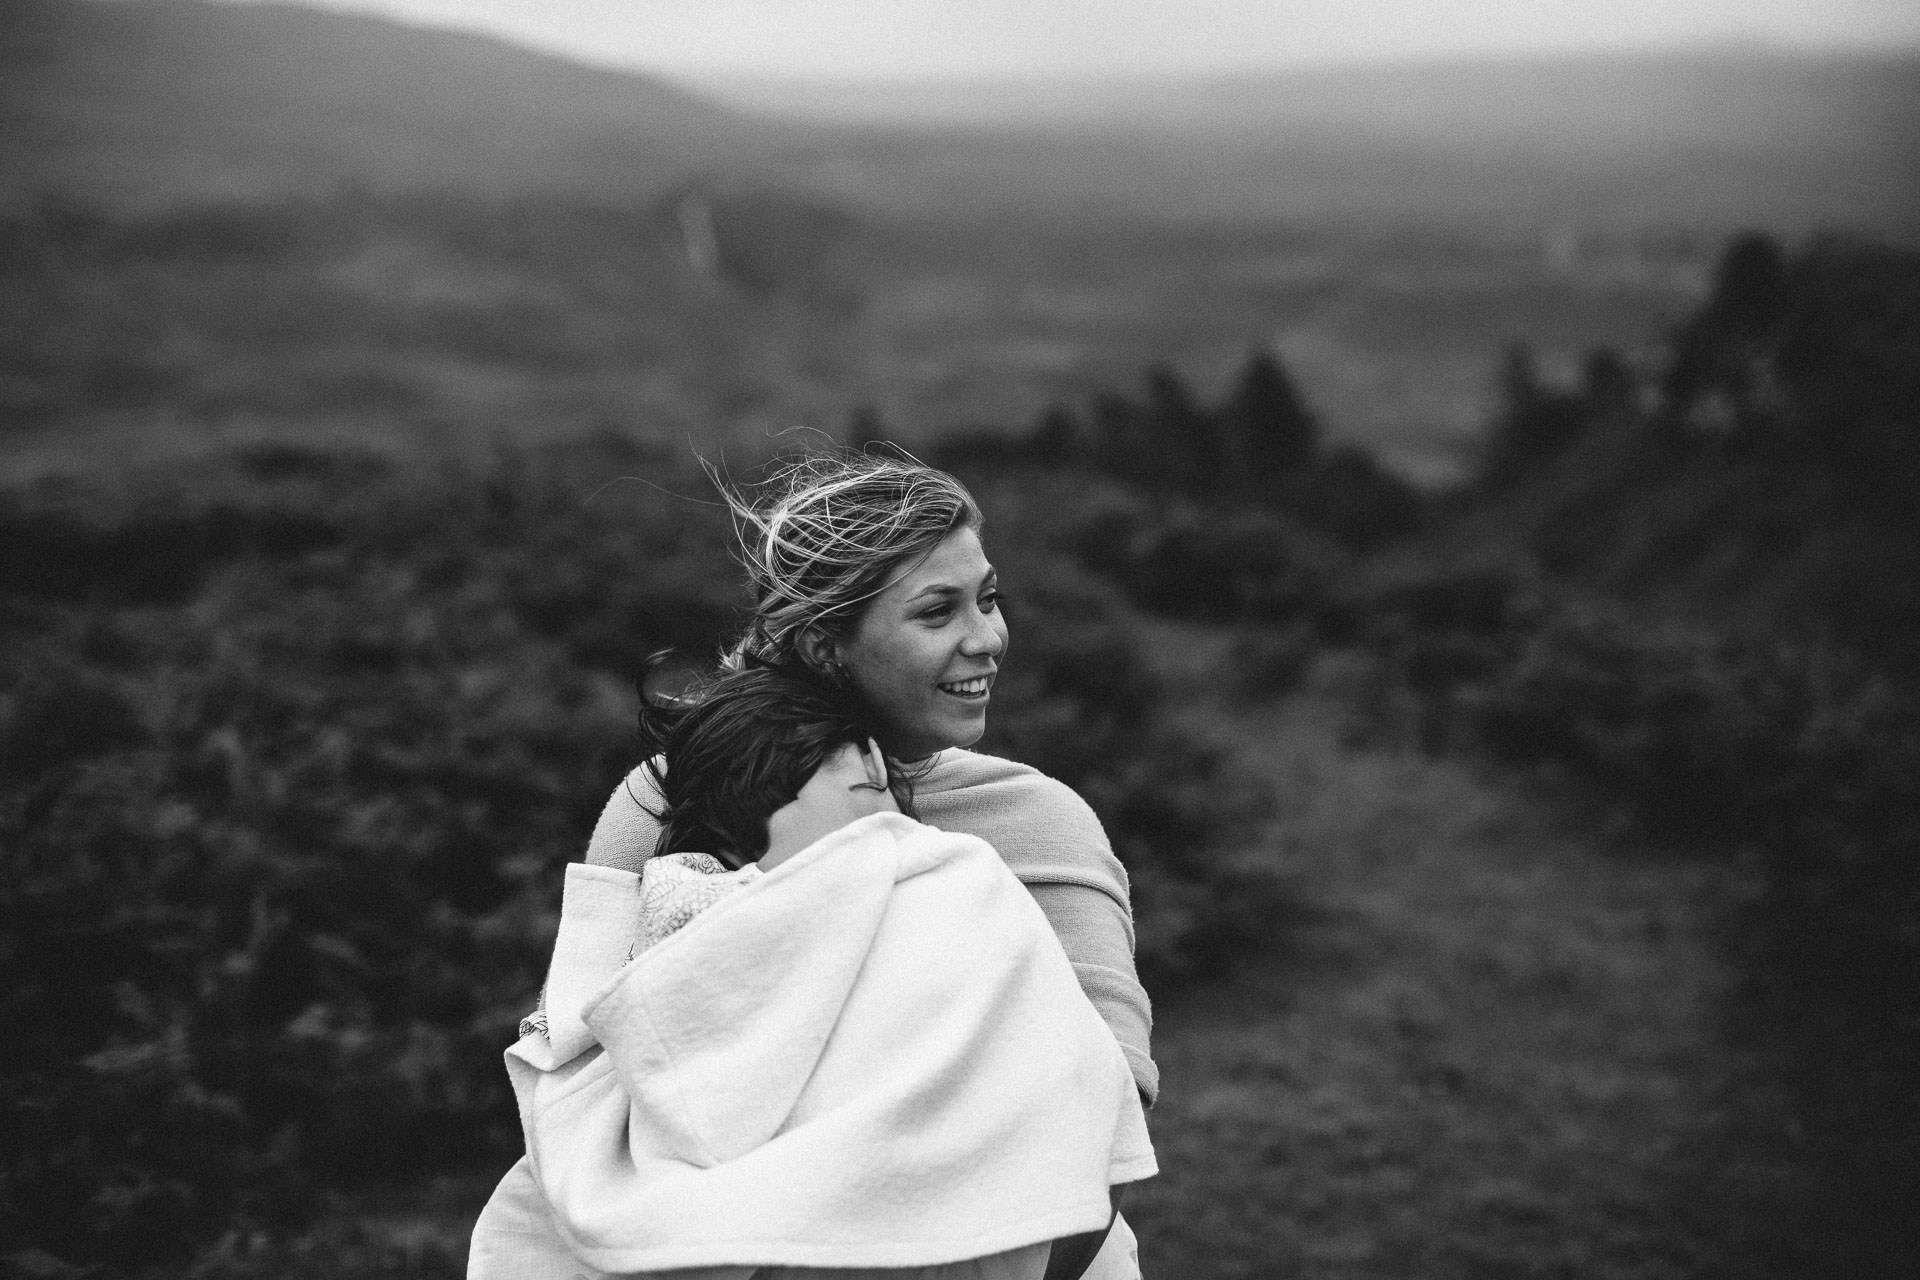 Megan_Matt_Elopement_IntimateWedding_Scotland_IsleOfSkye_JeanLaurentGaudy_074